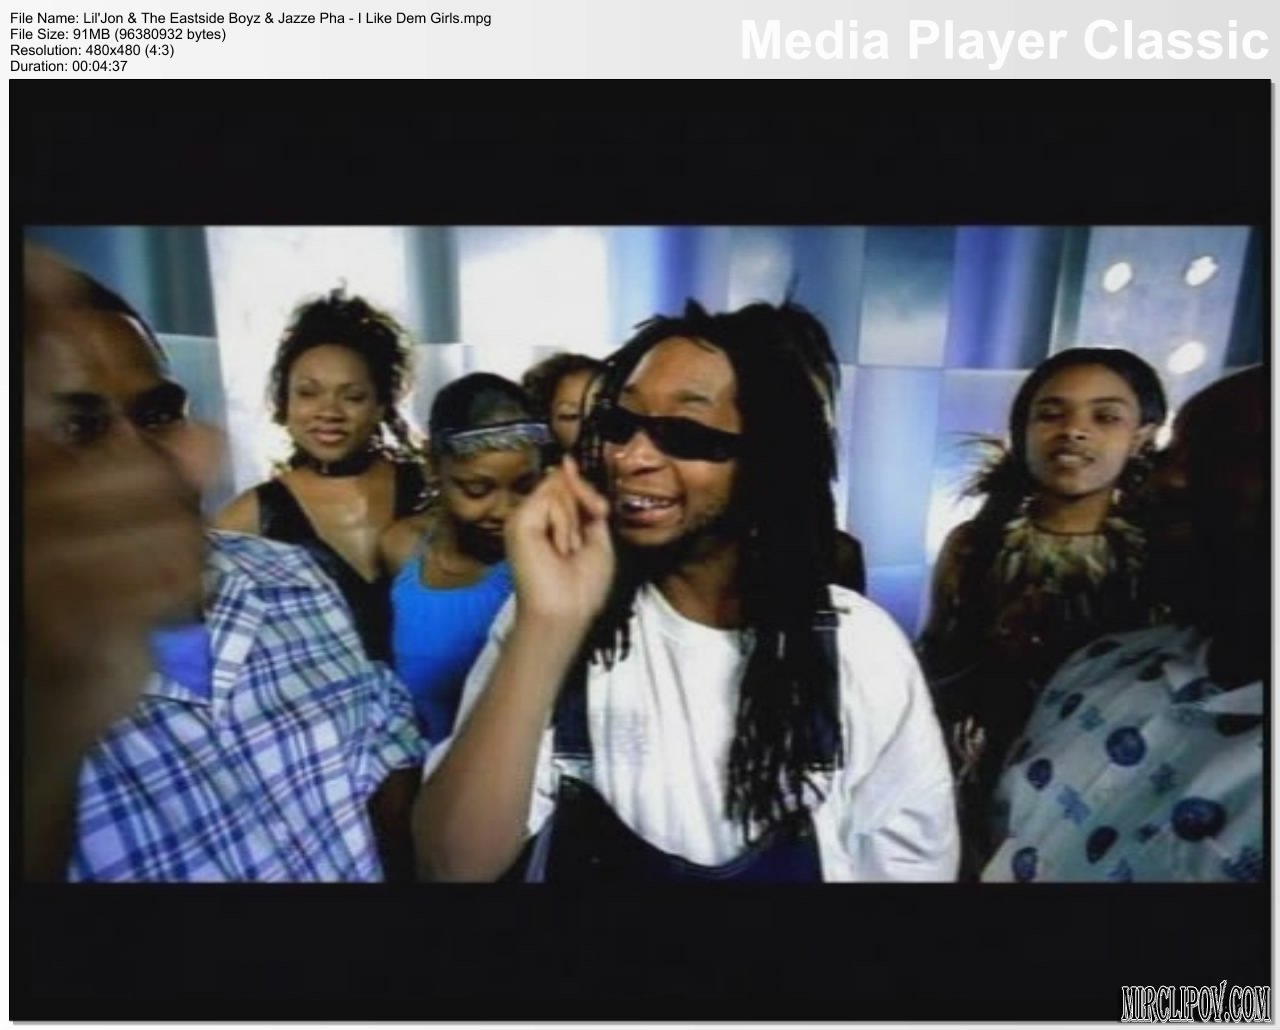 Lil'Jon & The Eastside Boyz & Jazze Pha - I Like Dem Girls